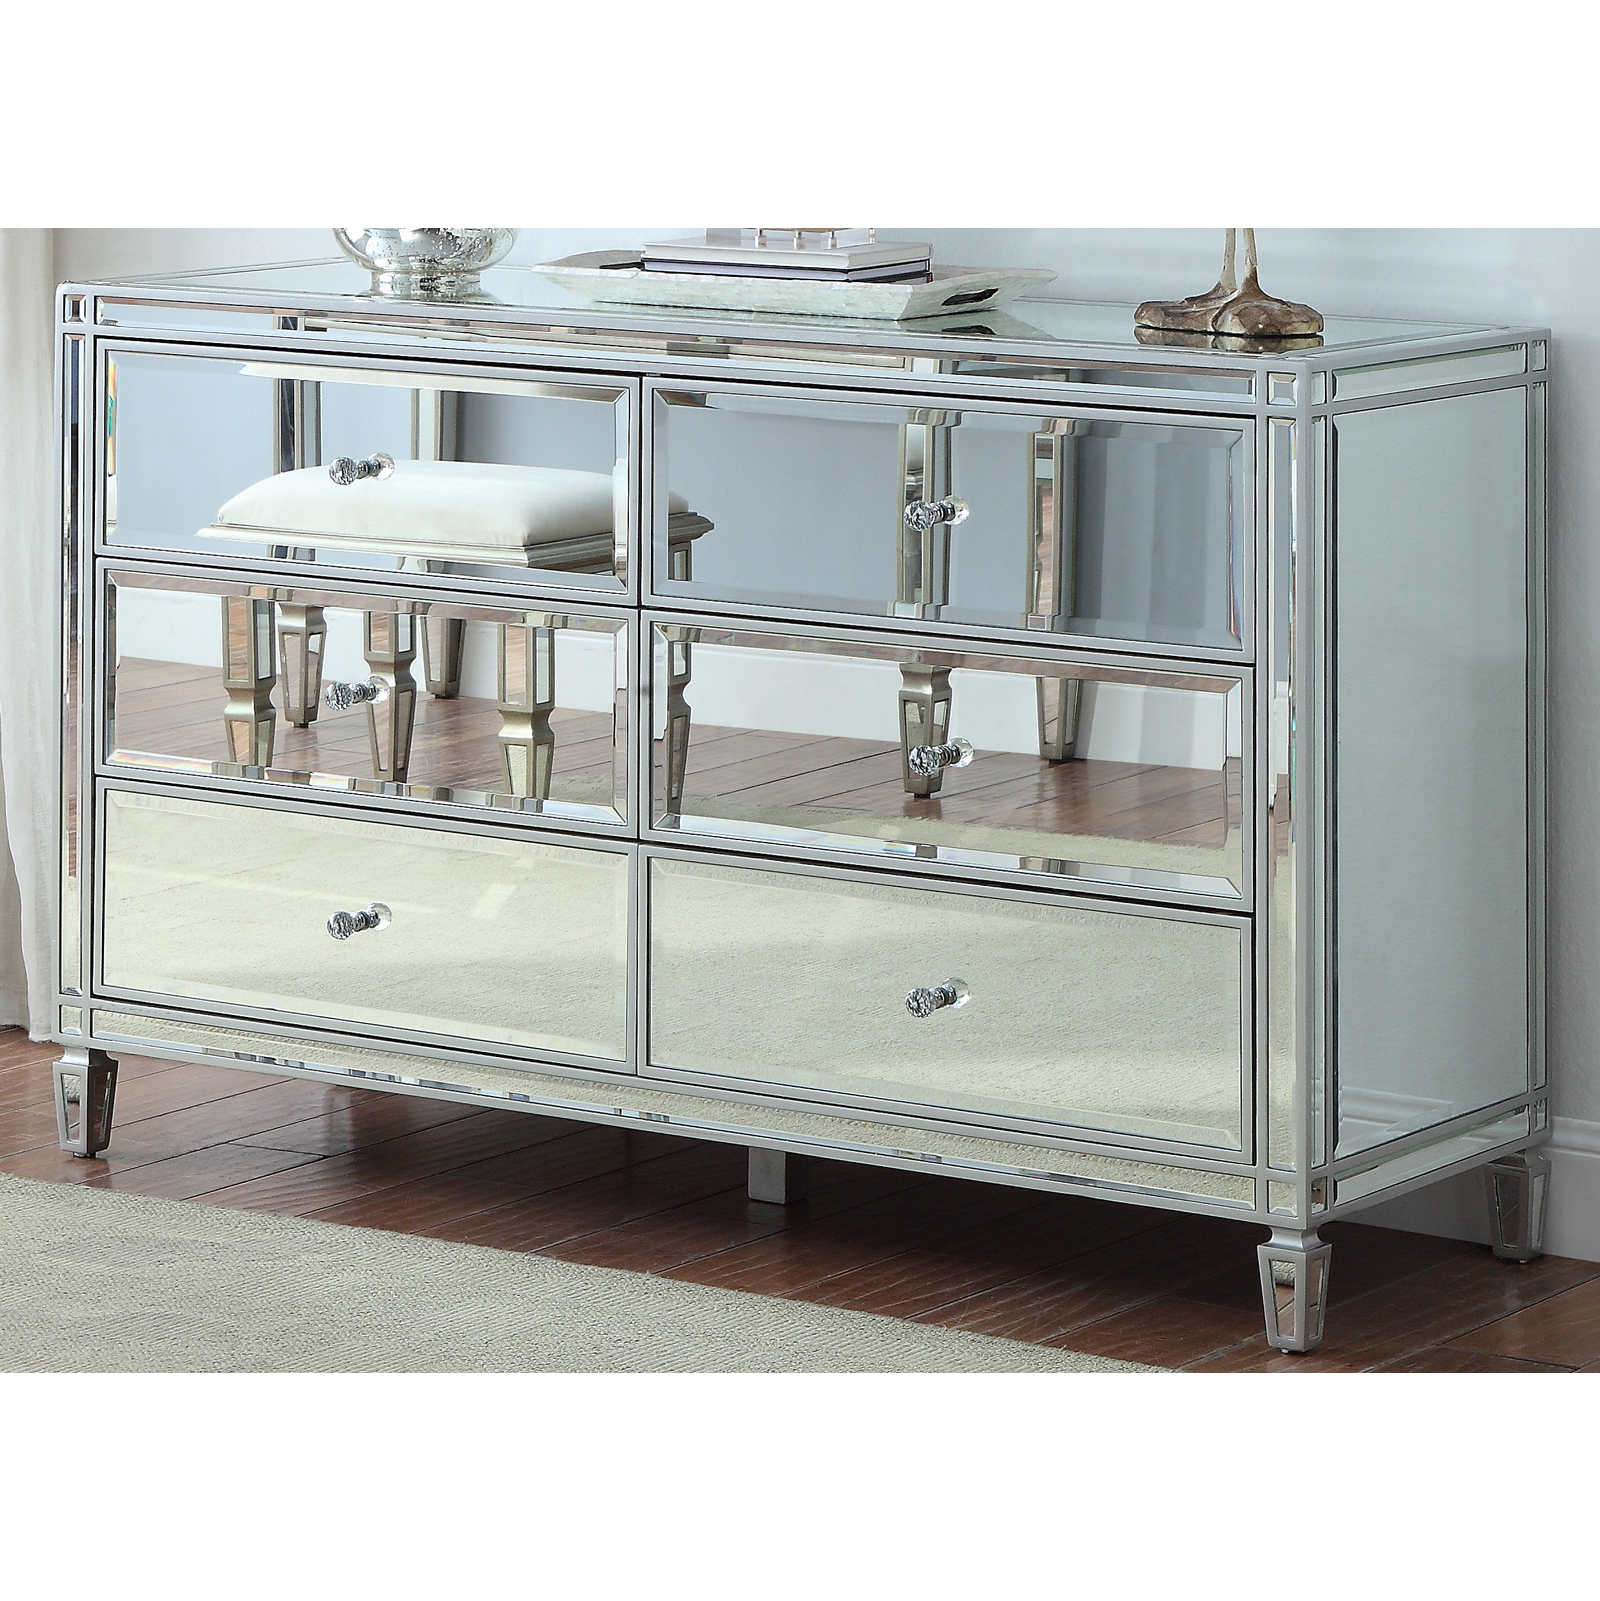 12 Drawer Living Room Mirrored Dresser Home Furniture Cabinet - Buy